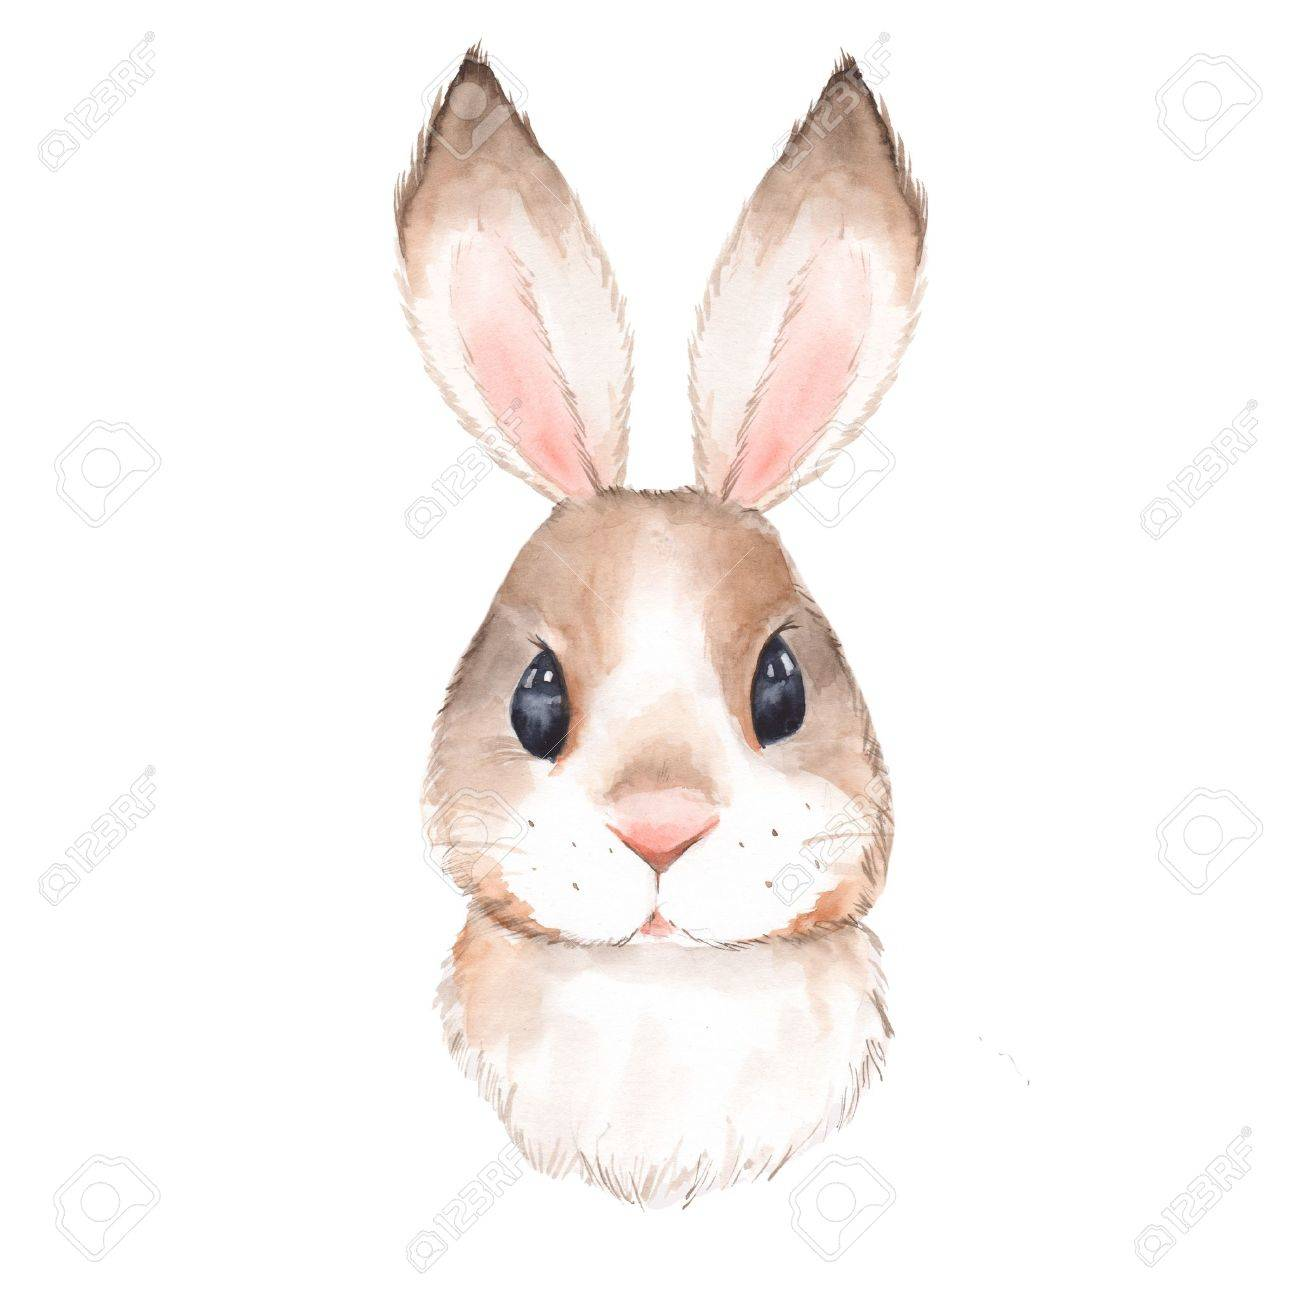 Cute rabbit. Watercolor illustration. Isolated on white background 2 - 81592468